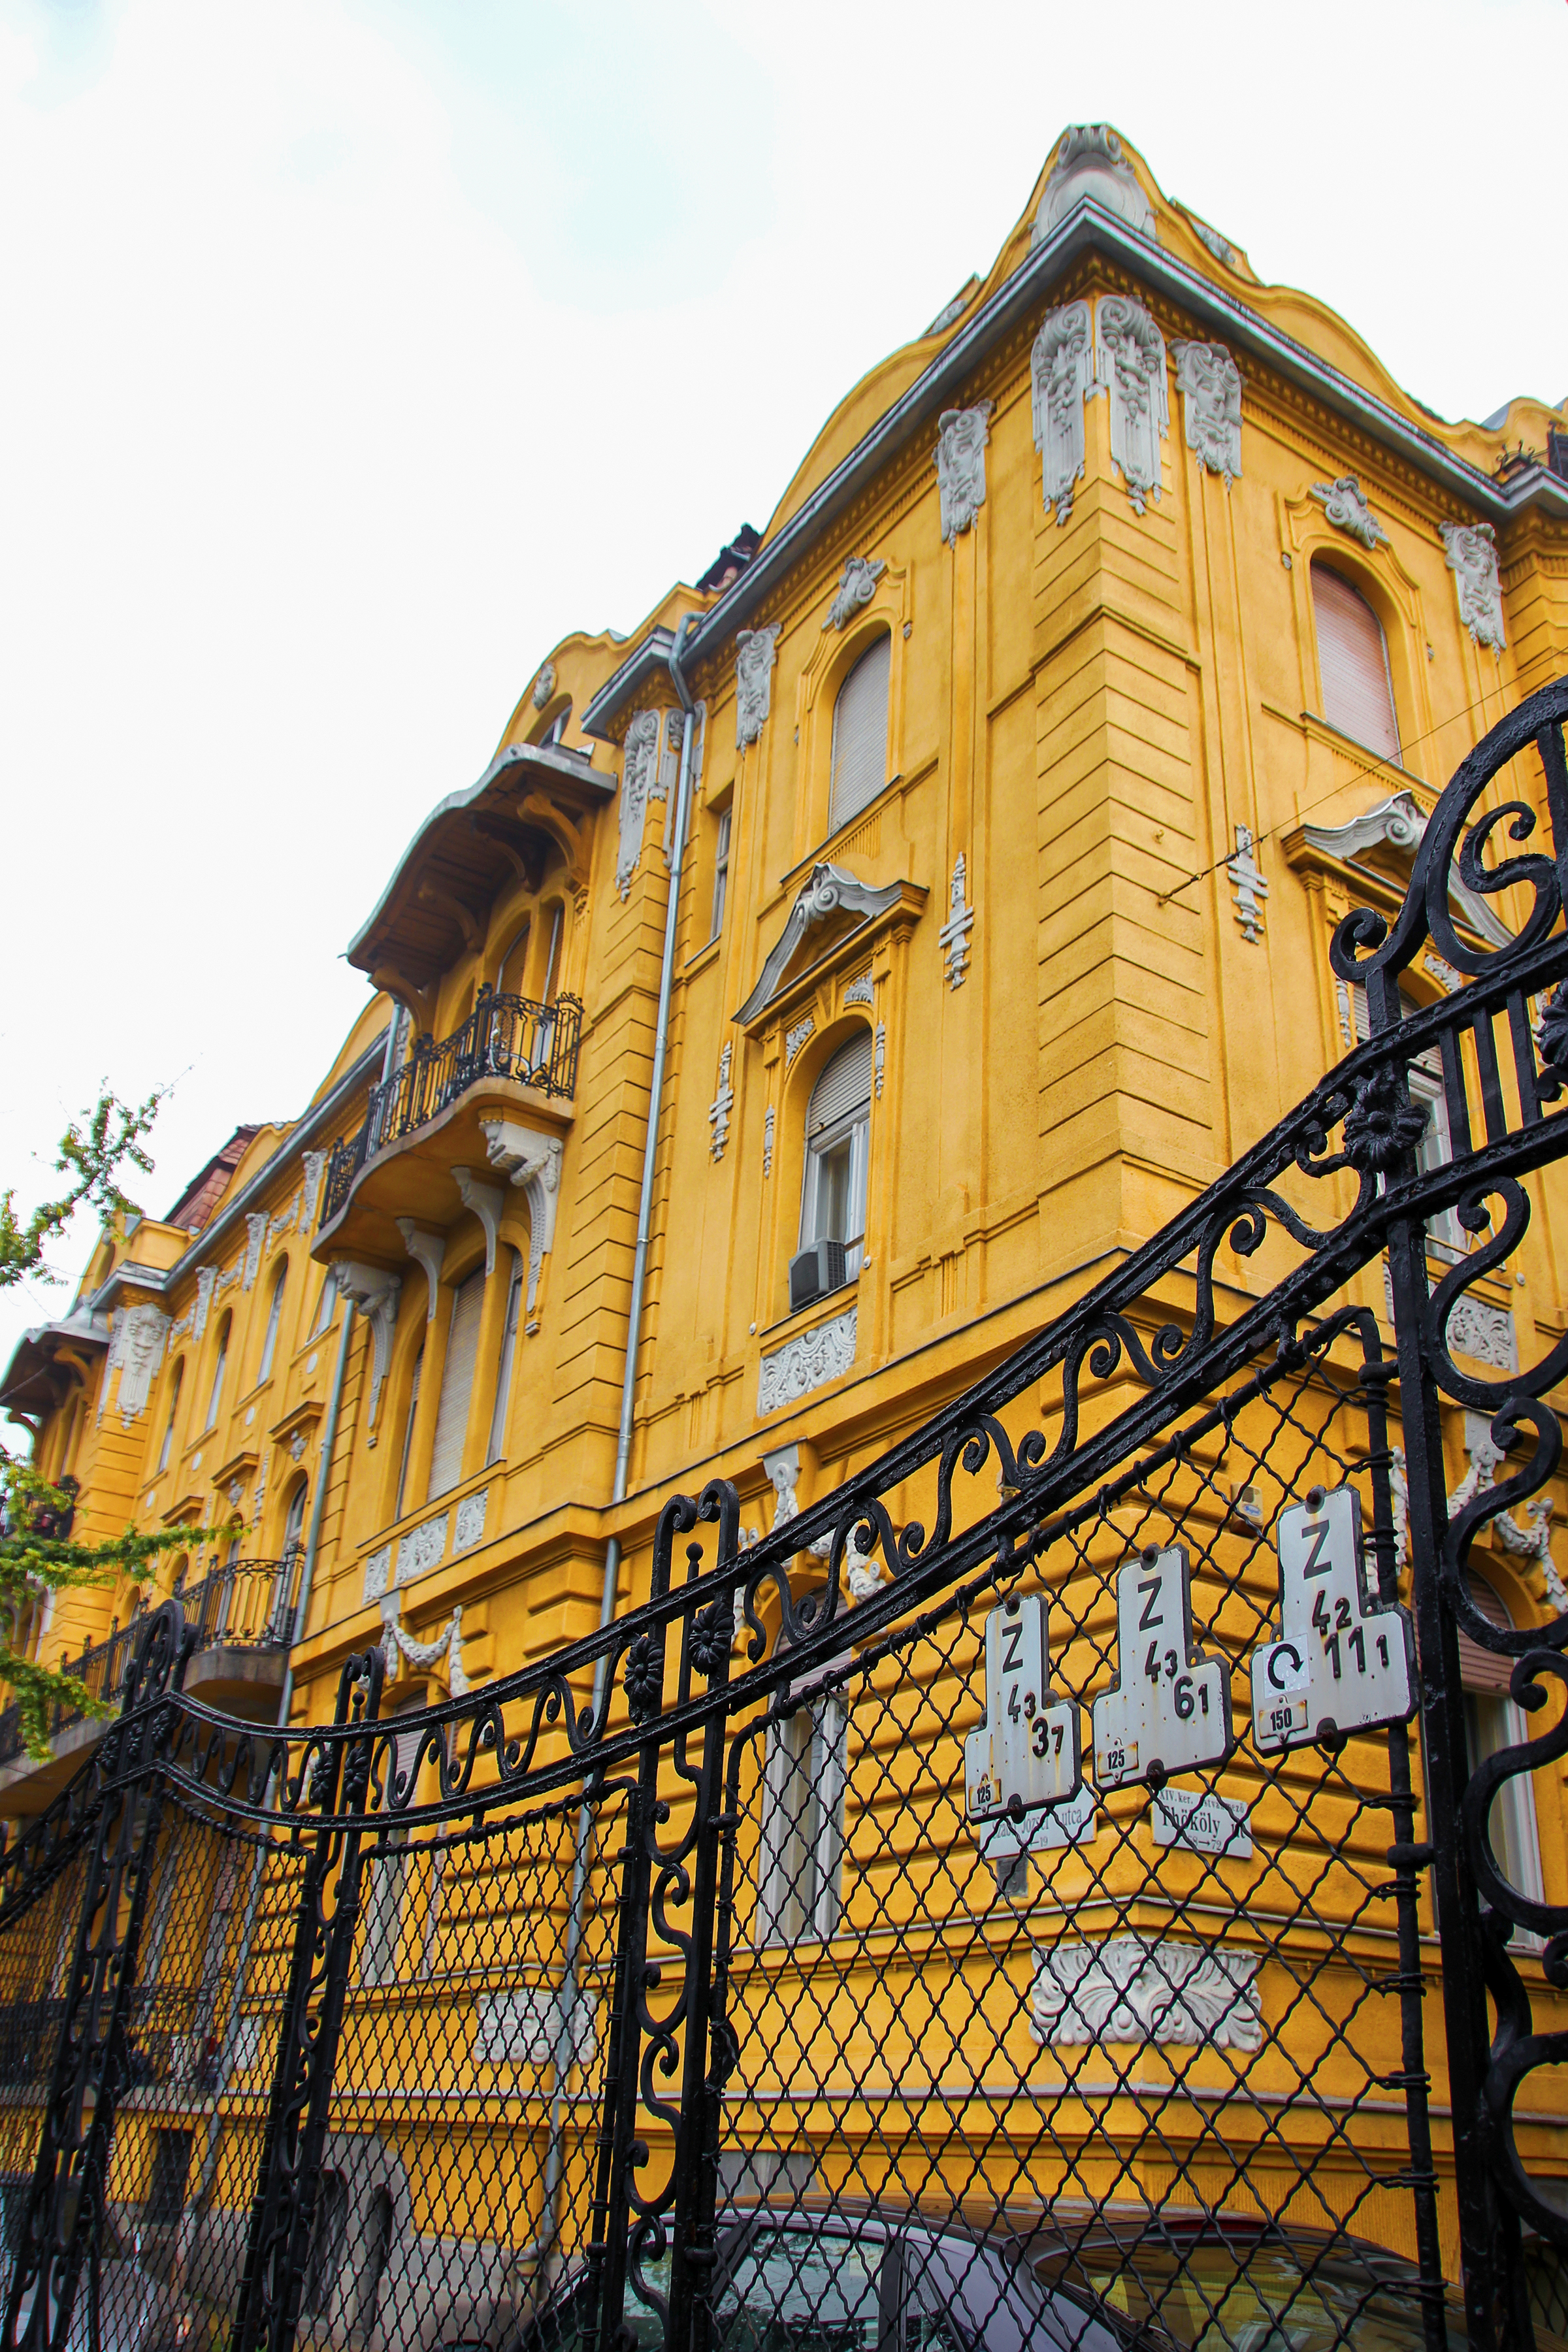 Old house in budapest photo